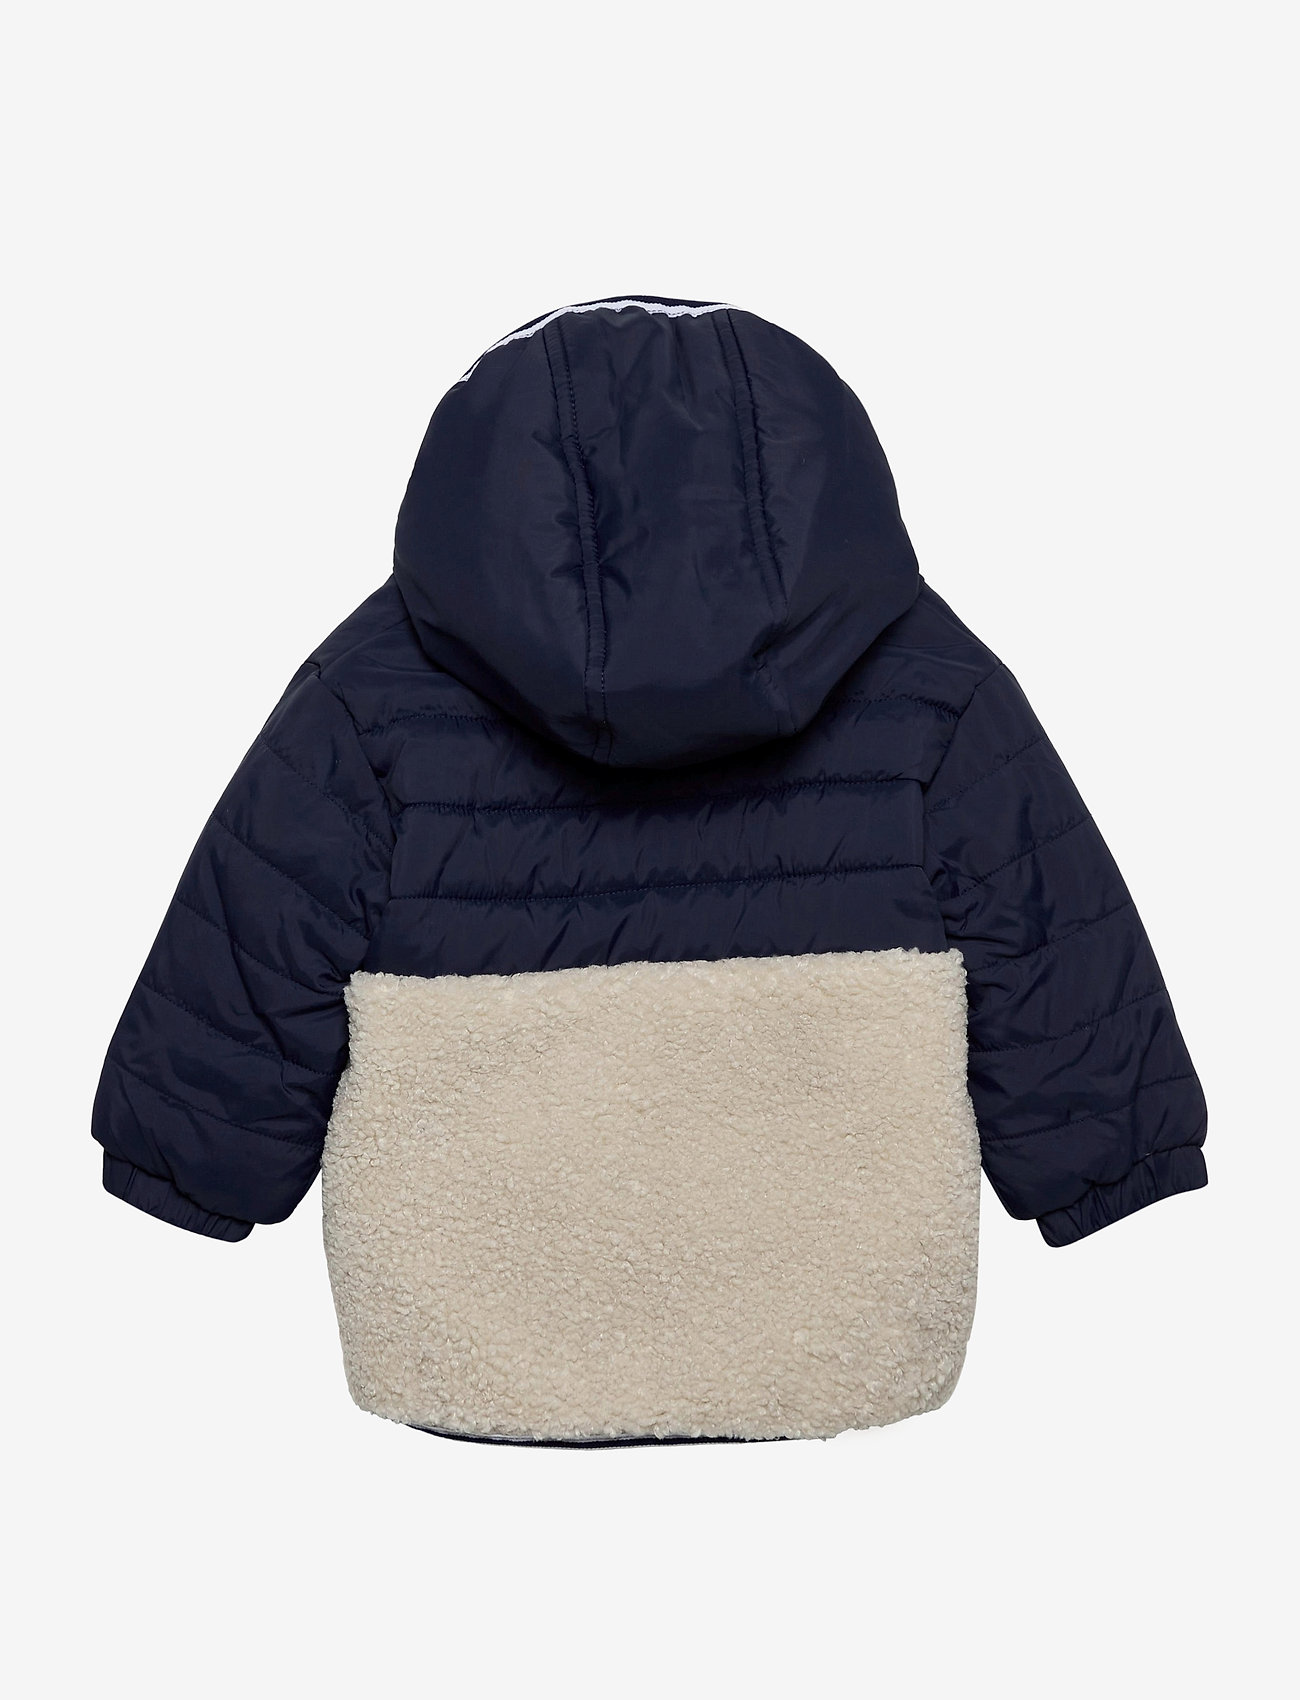 Timberland - HOODED JACKET - dunjakker & forede jakker - unique - 1